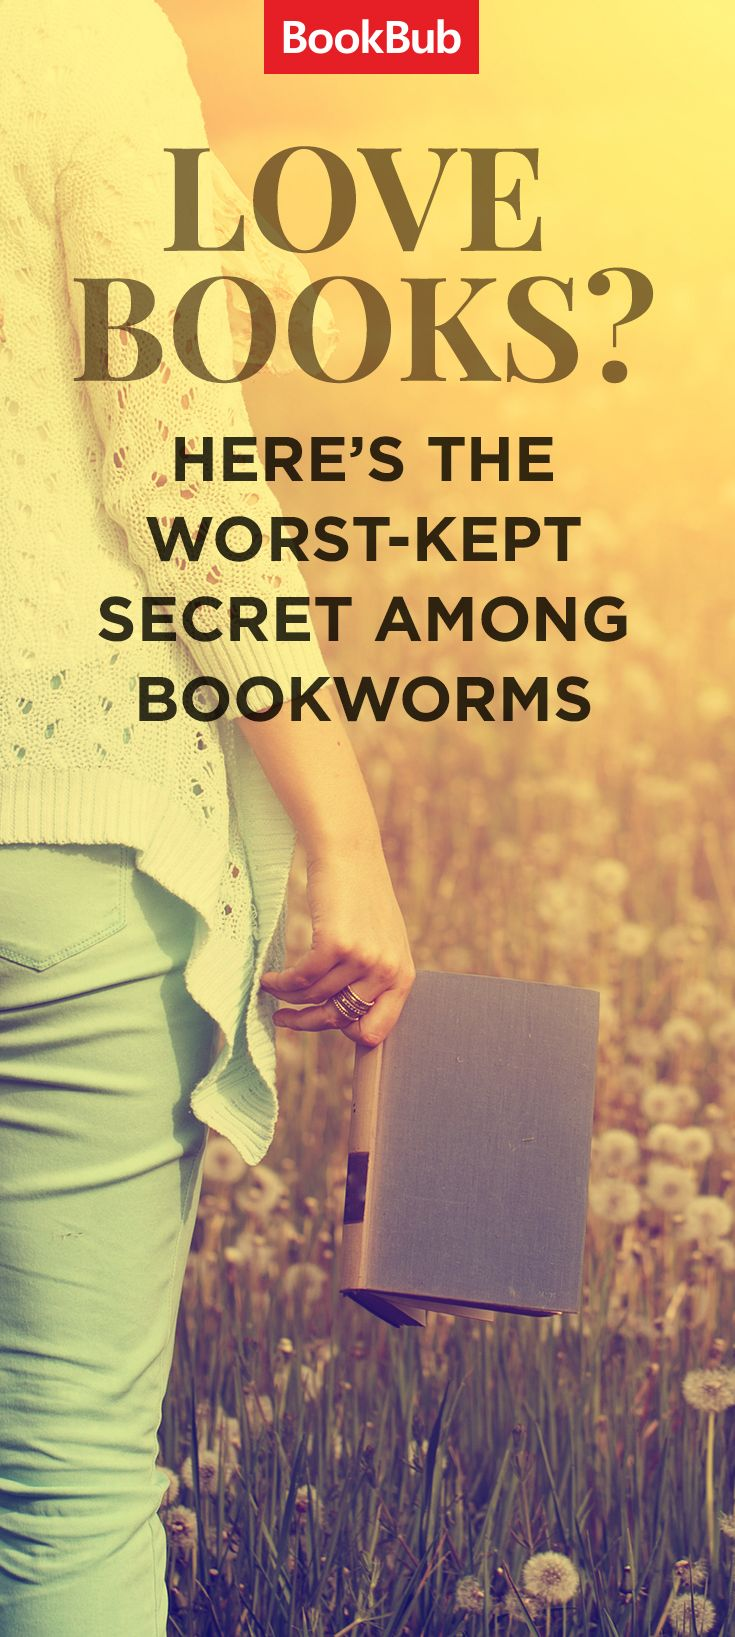 BookBub: the book-buying hack you haven't heard about, but should.